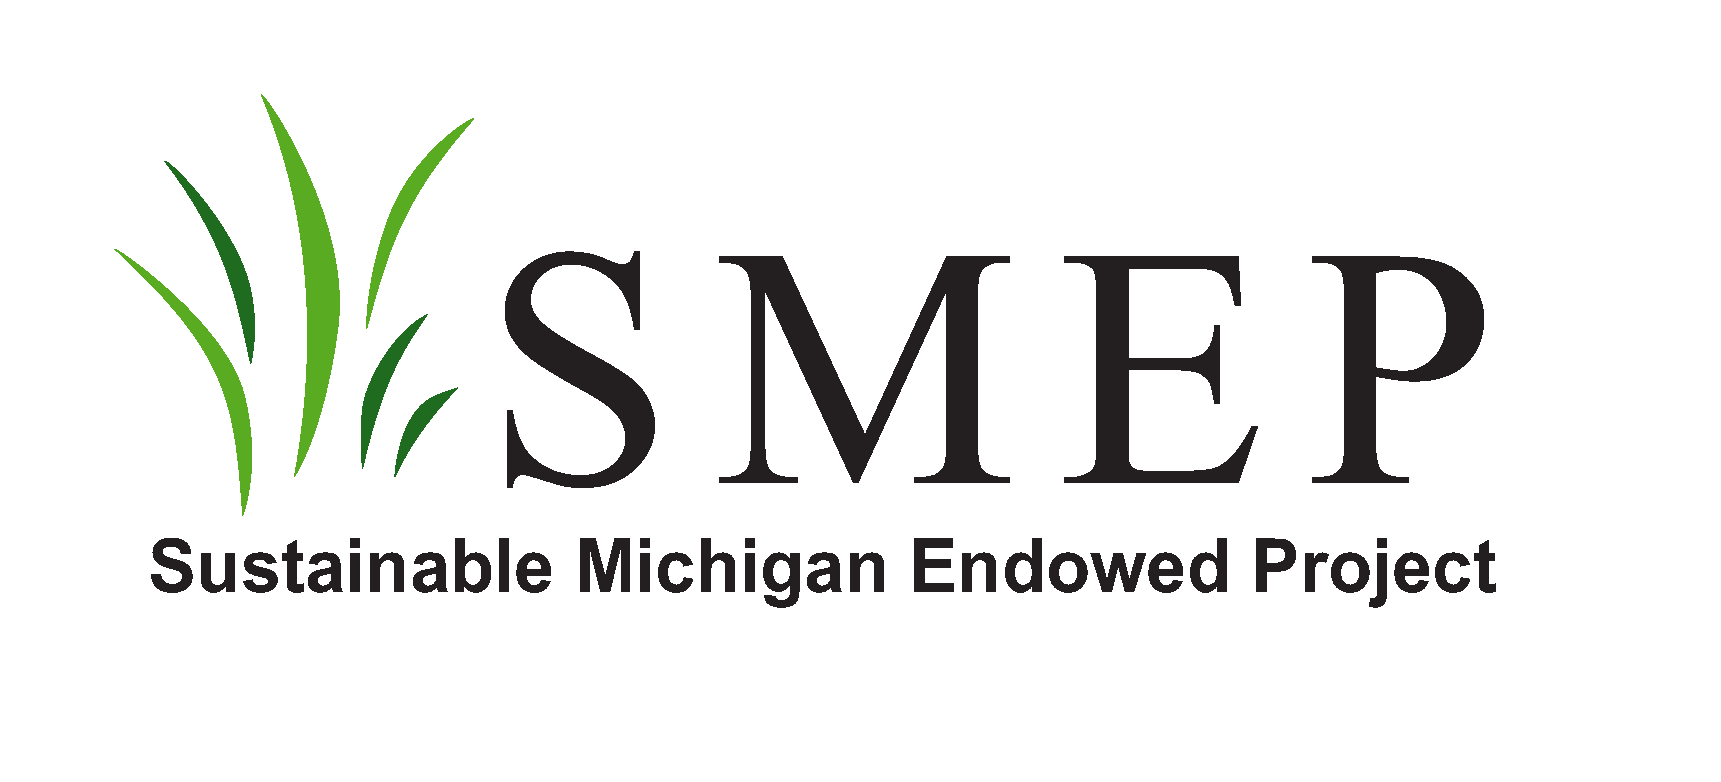 Sustainable Michigan Indowed Project Logo